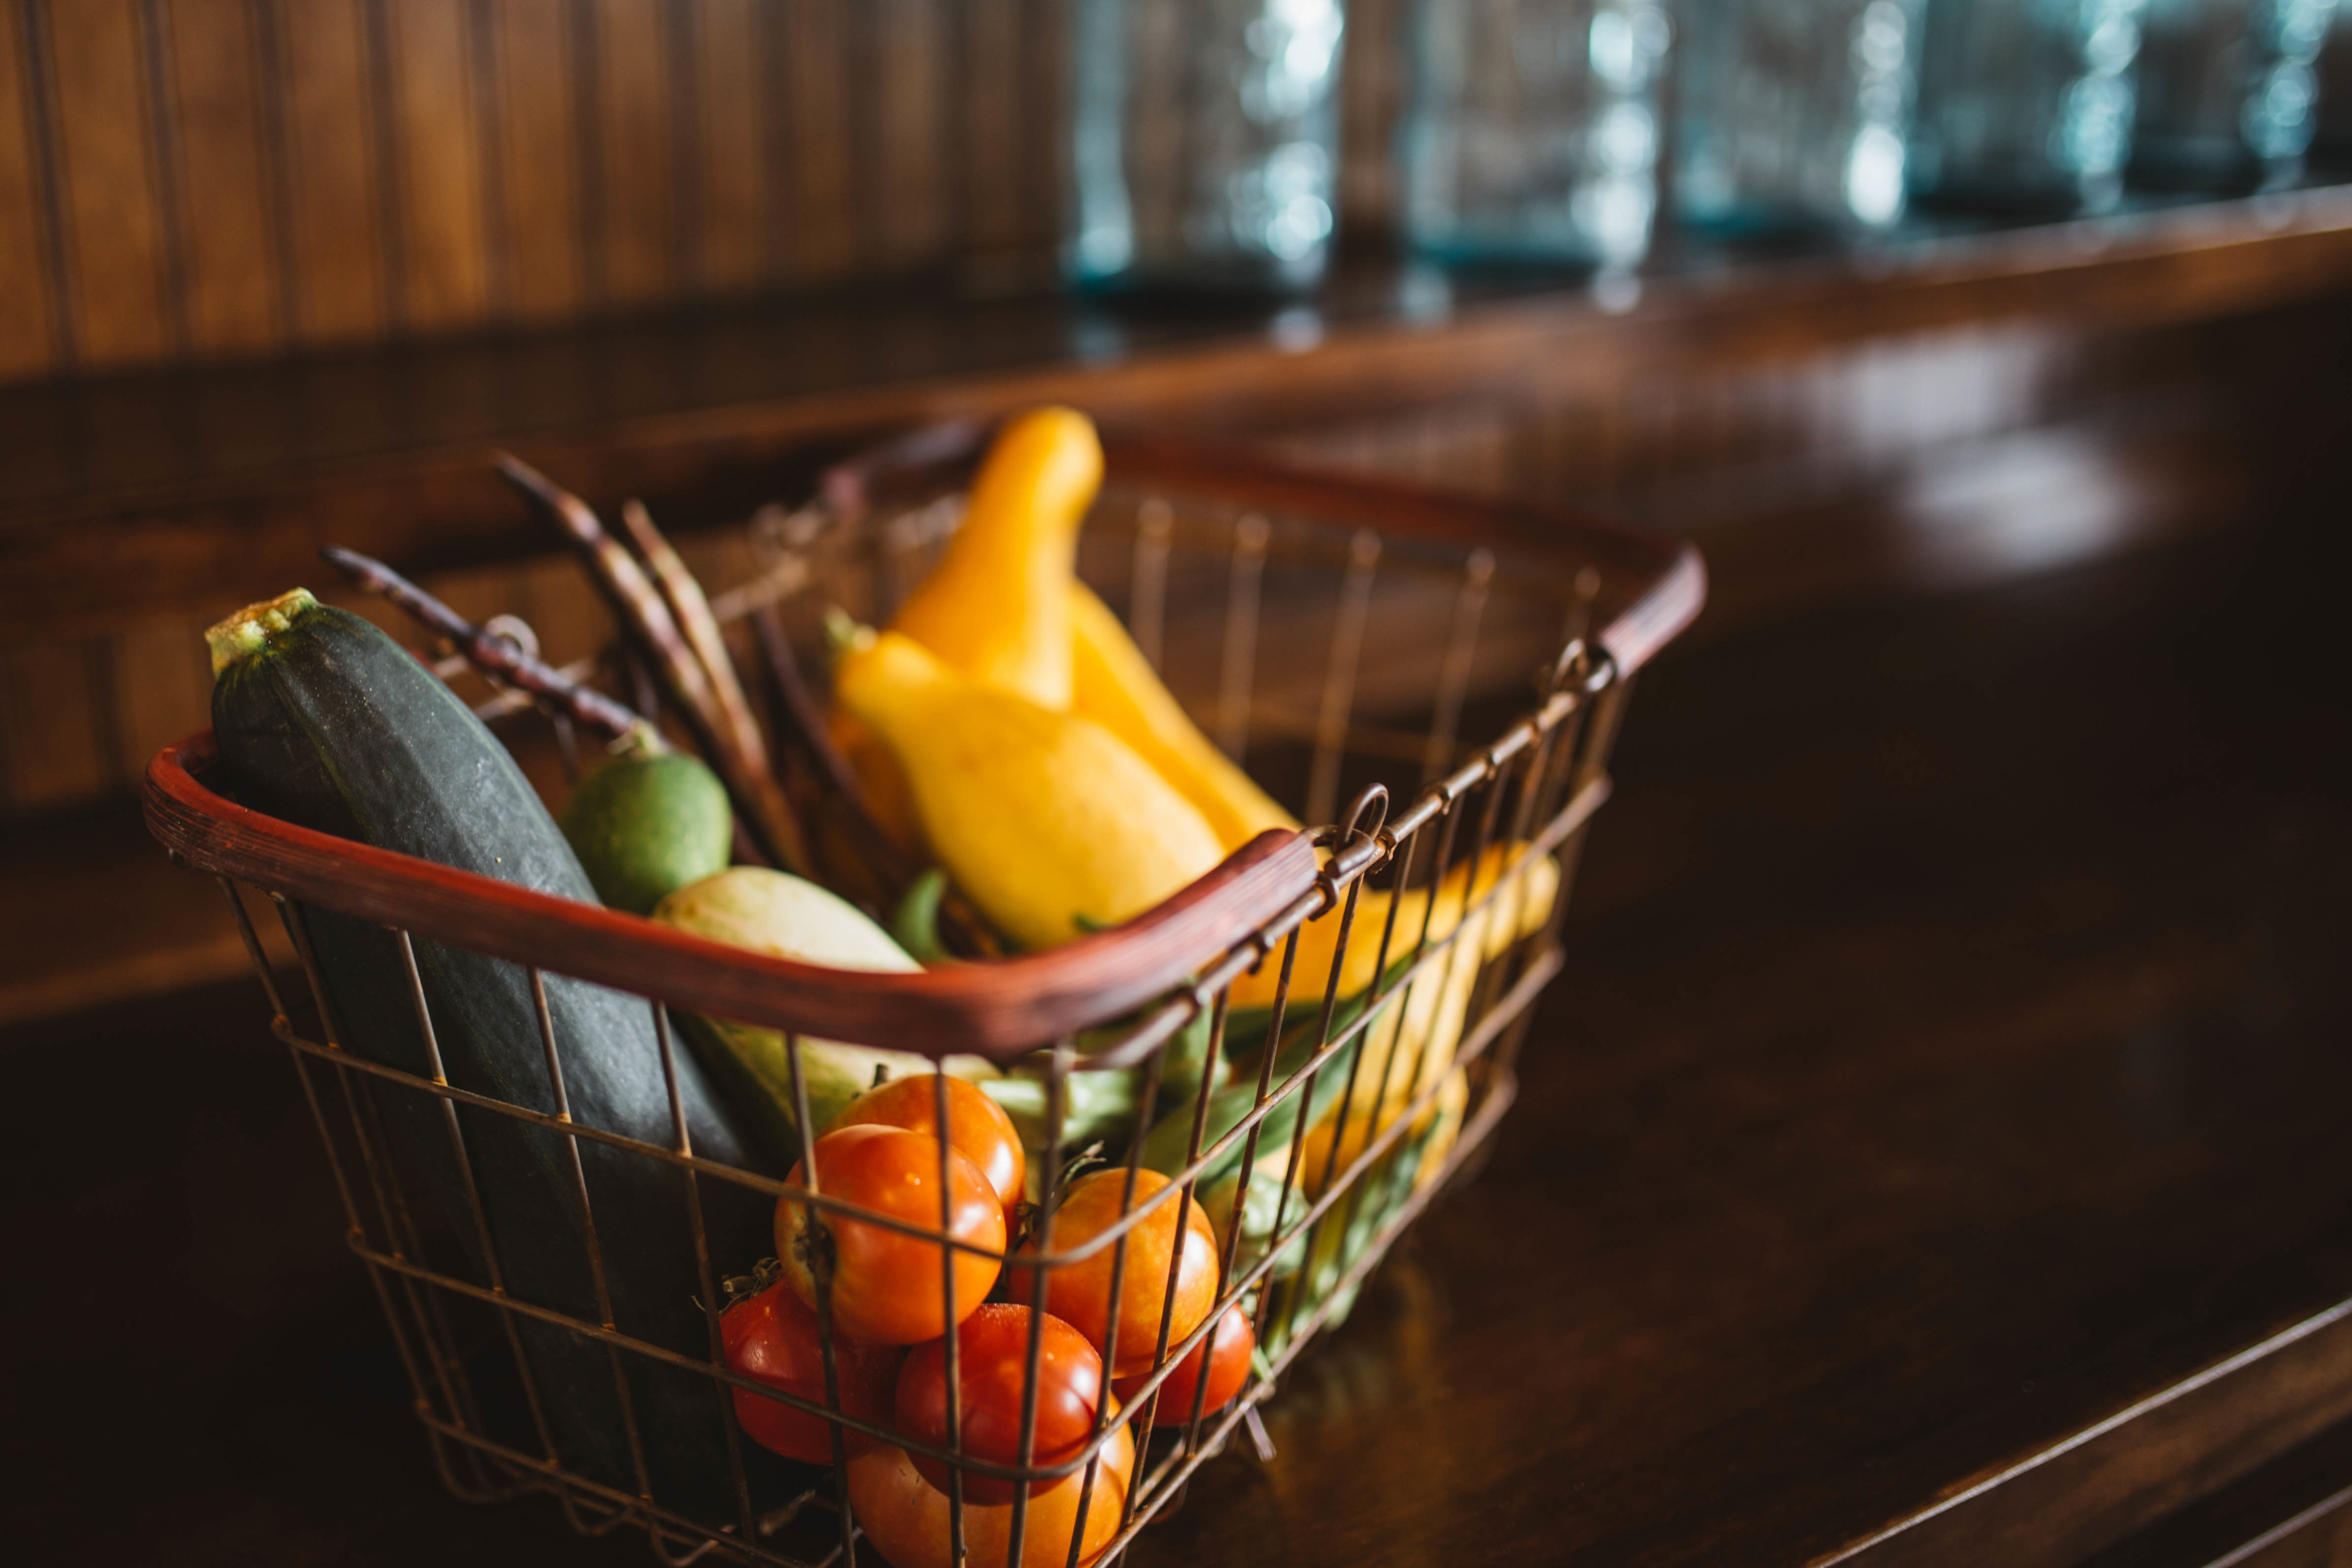 How to Reduce Food Waste?